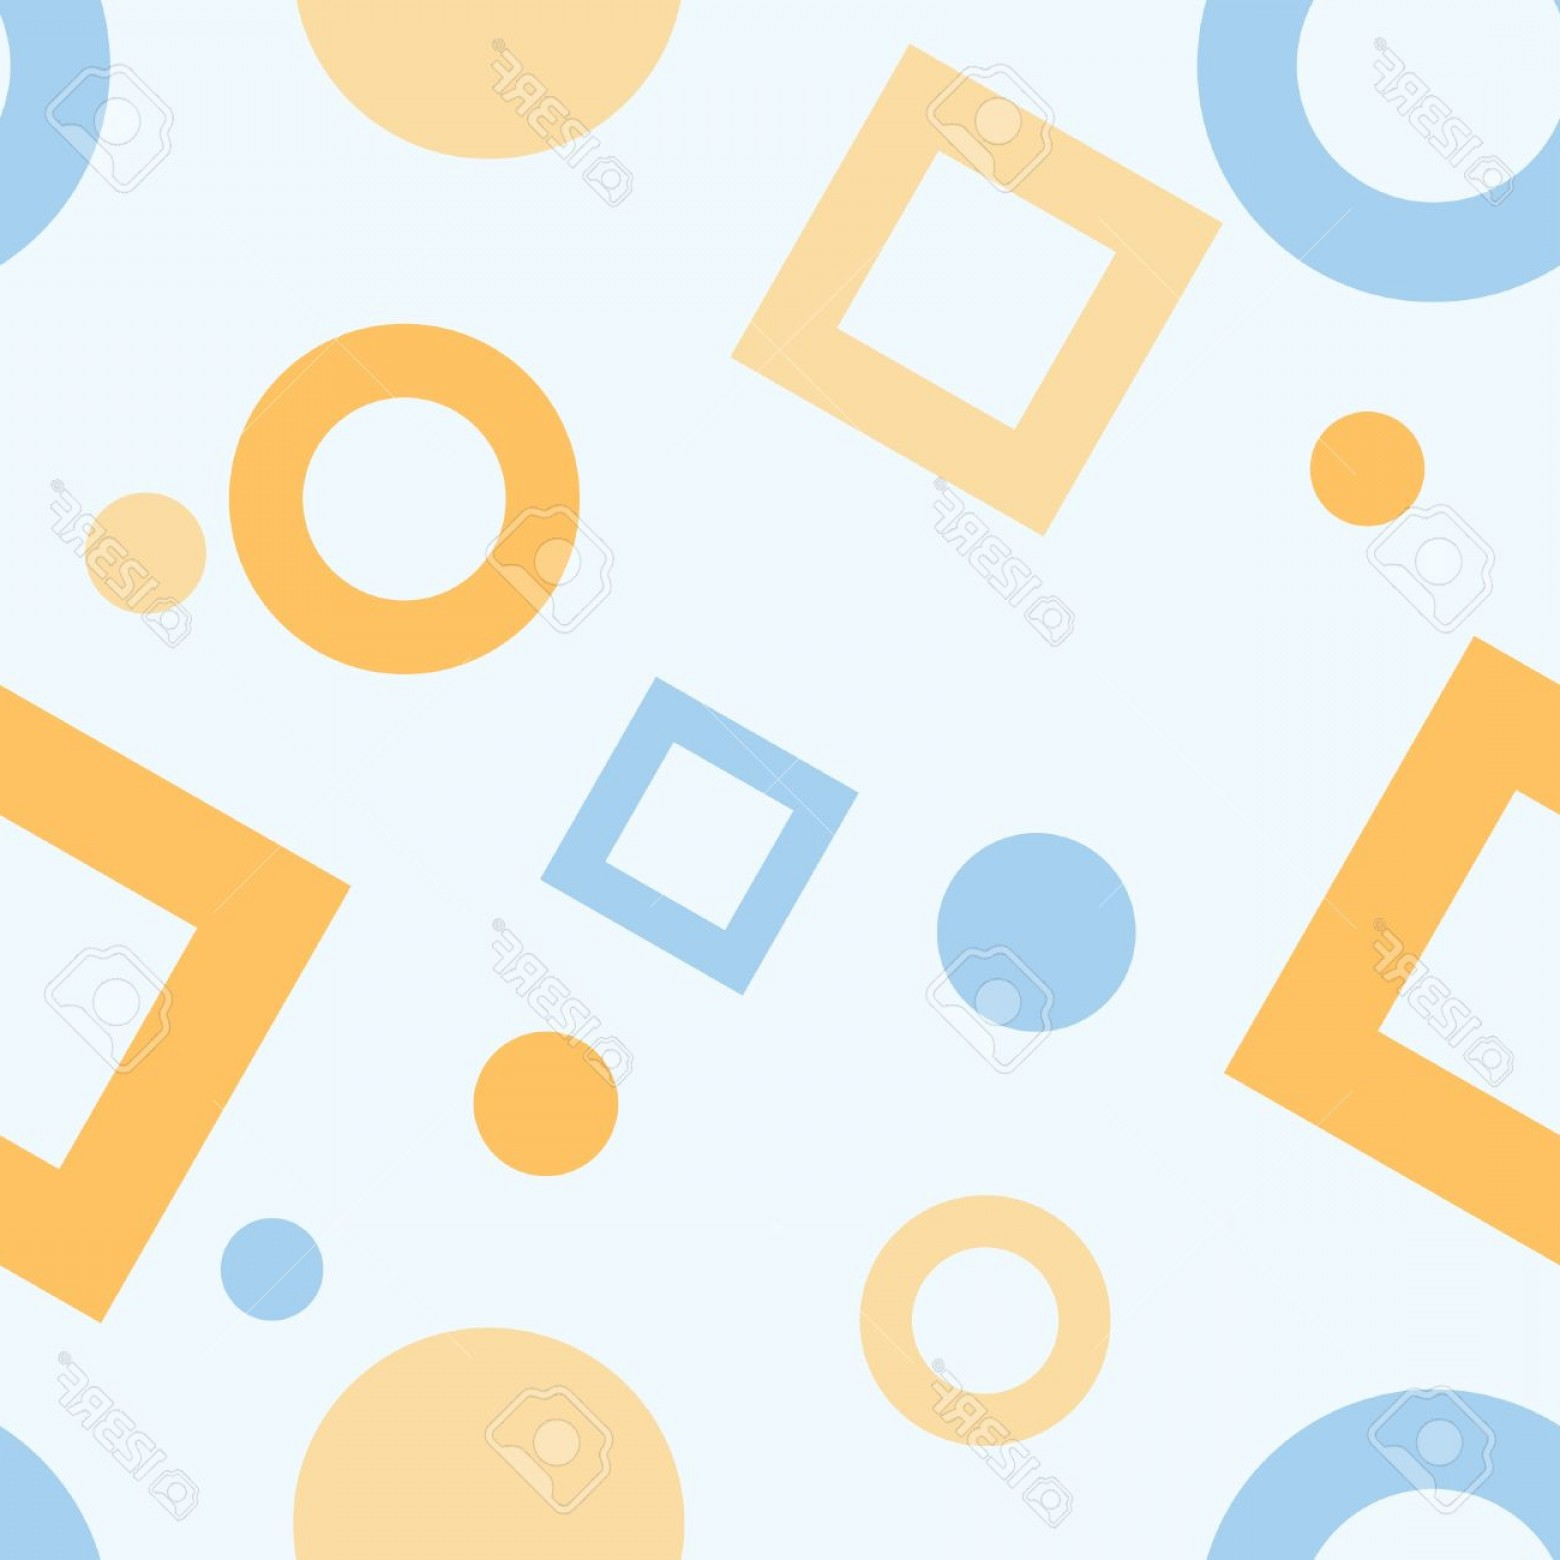 Blue And Orange Circle Vector: Photoa Seamless Pattern Of Blue And Orange Circles And Squares On A Pale Blue Background